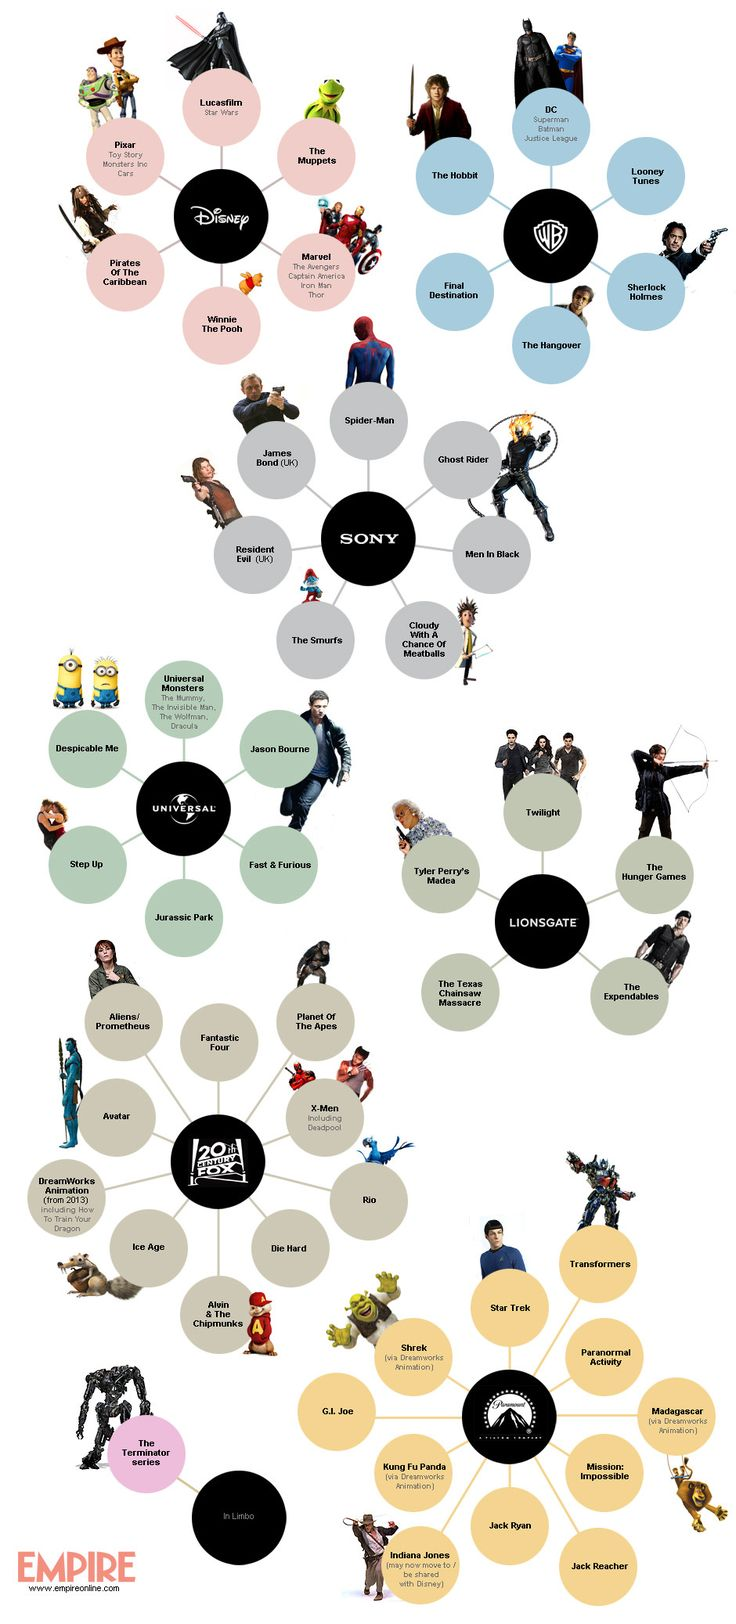 Film Franchises and Who Owns What?